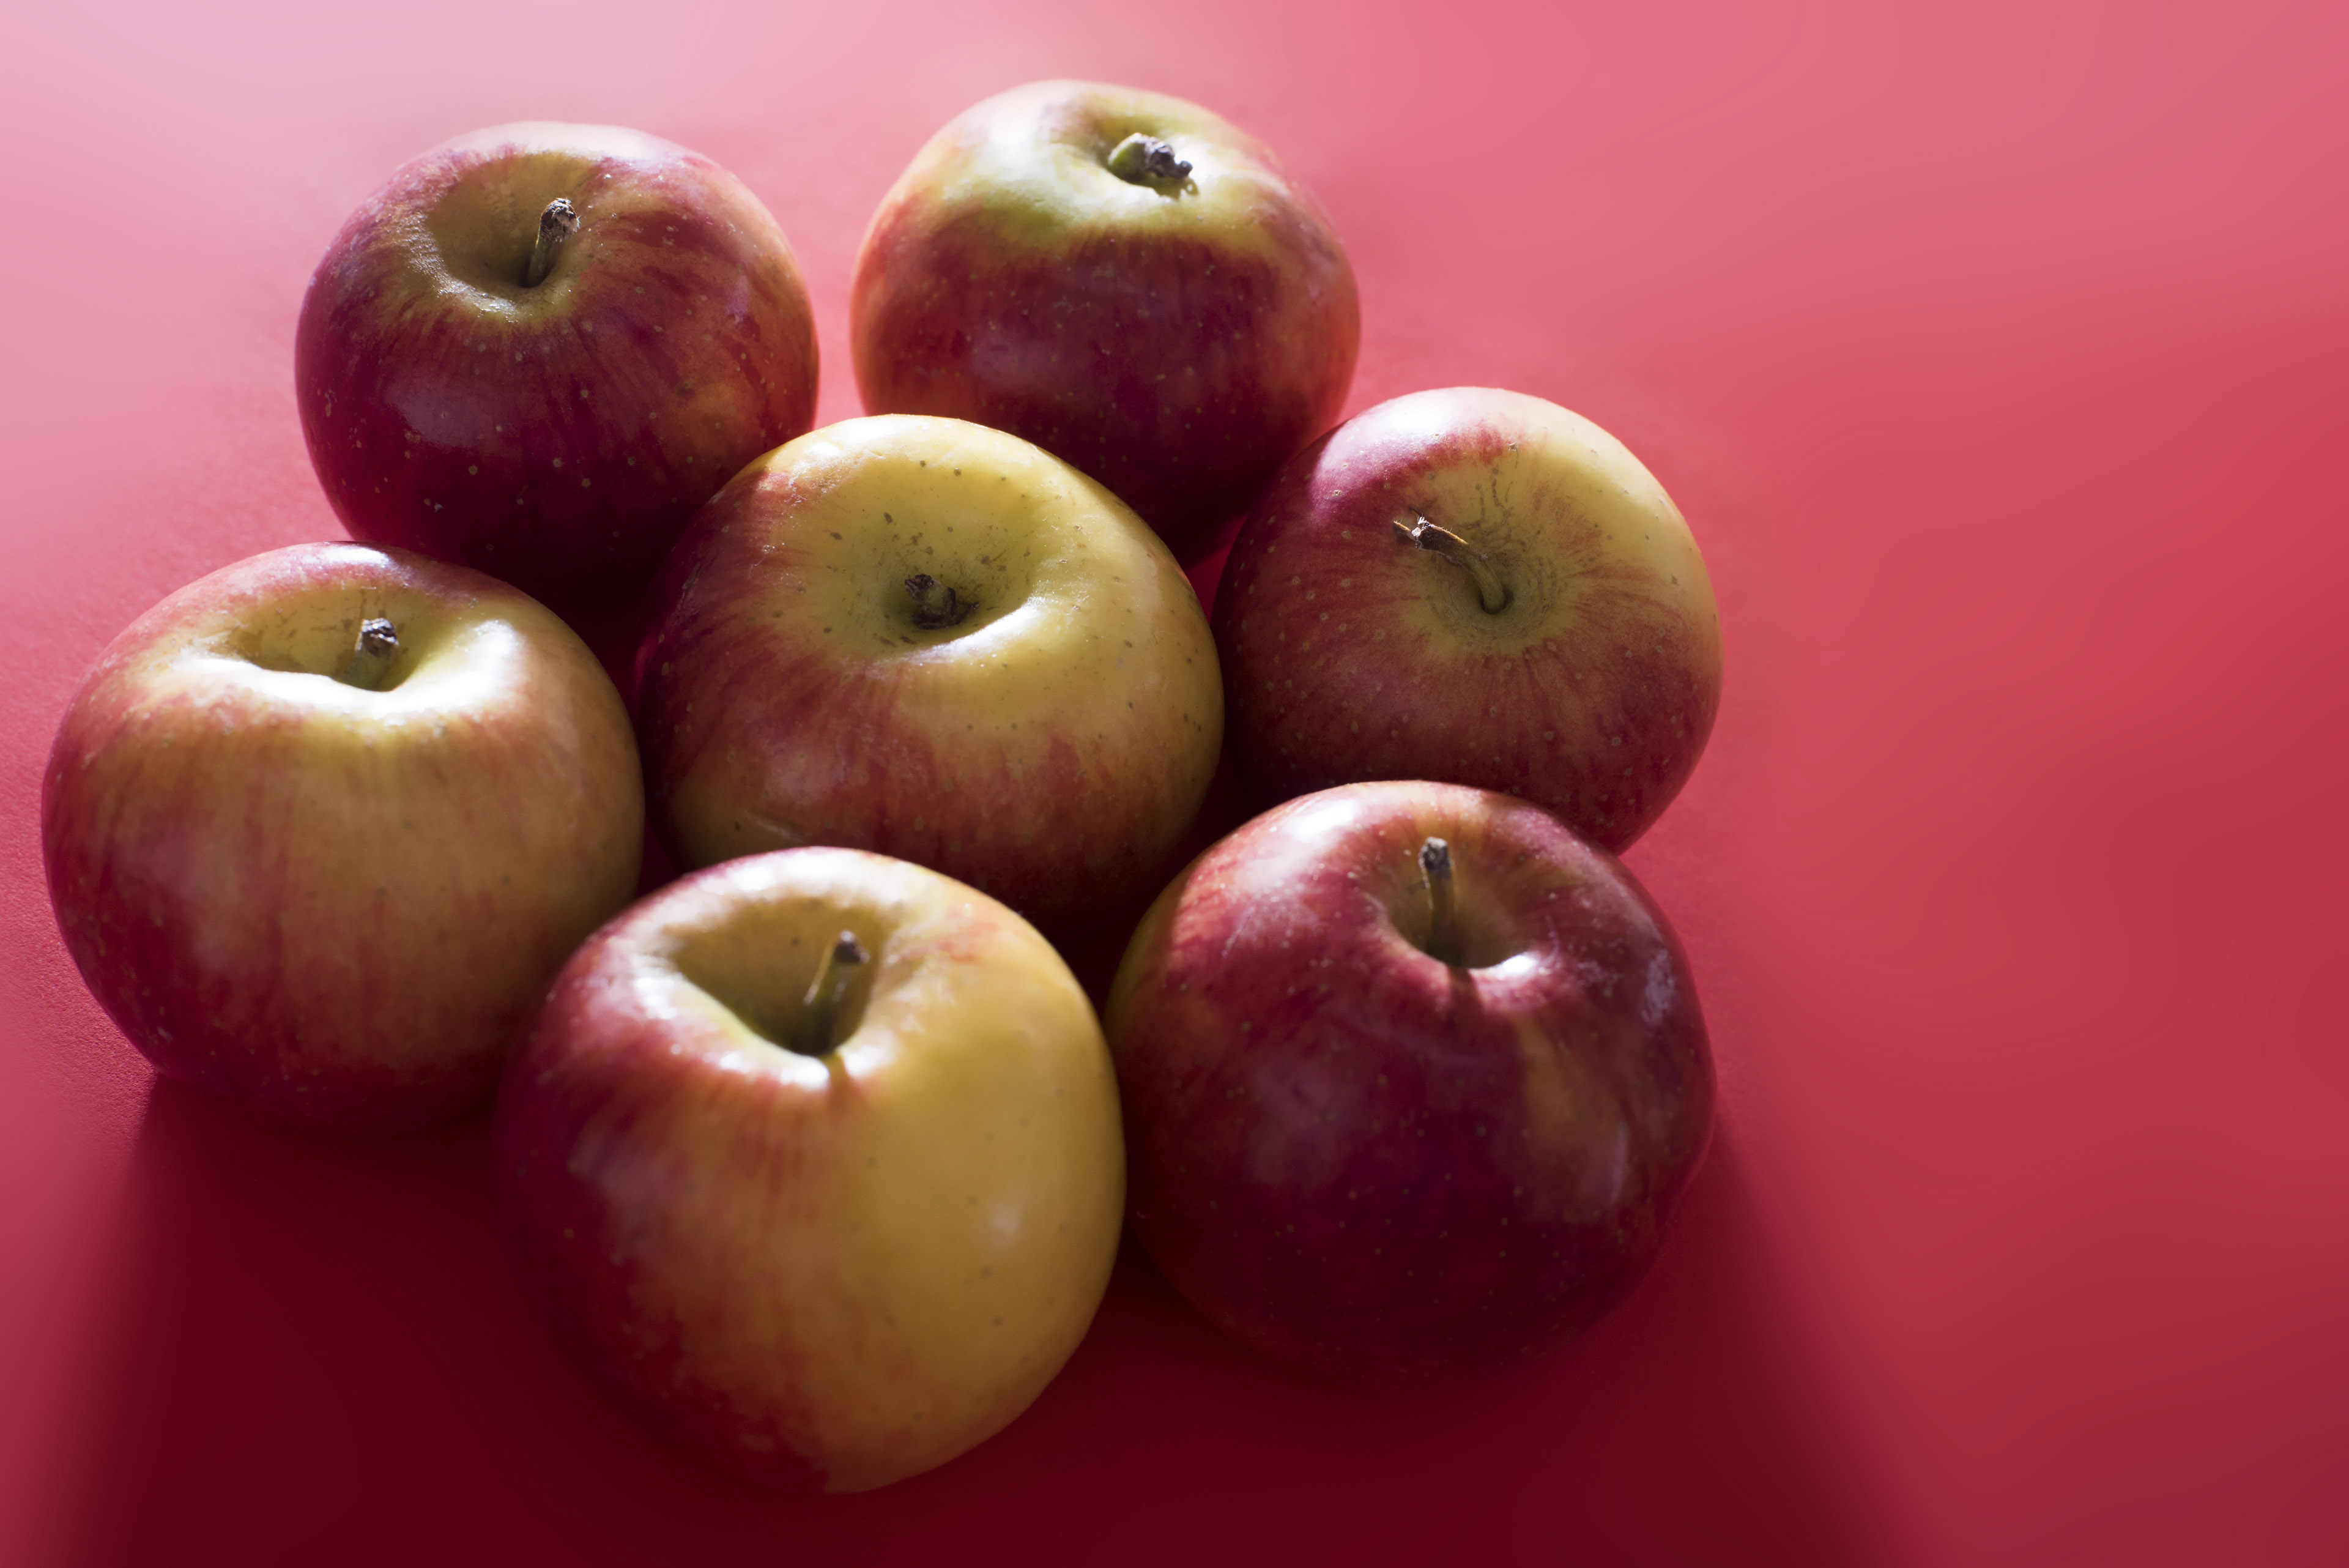 A group of seven apples huddled together lit by bright, contrasting light on a plain red background with copy space.